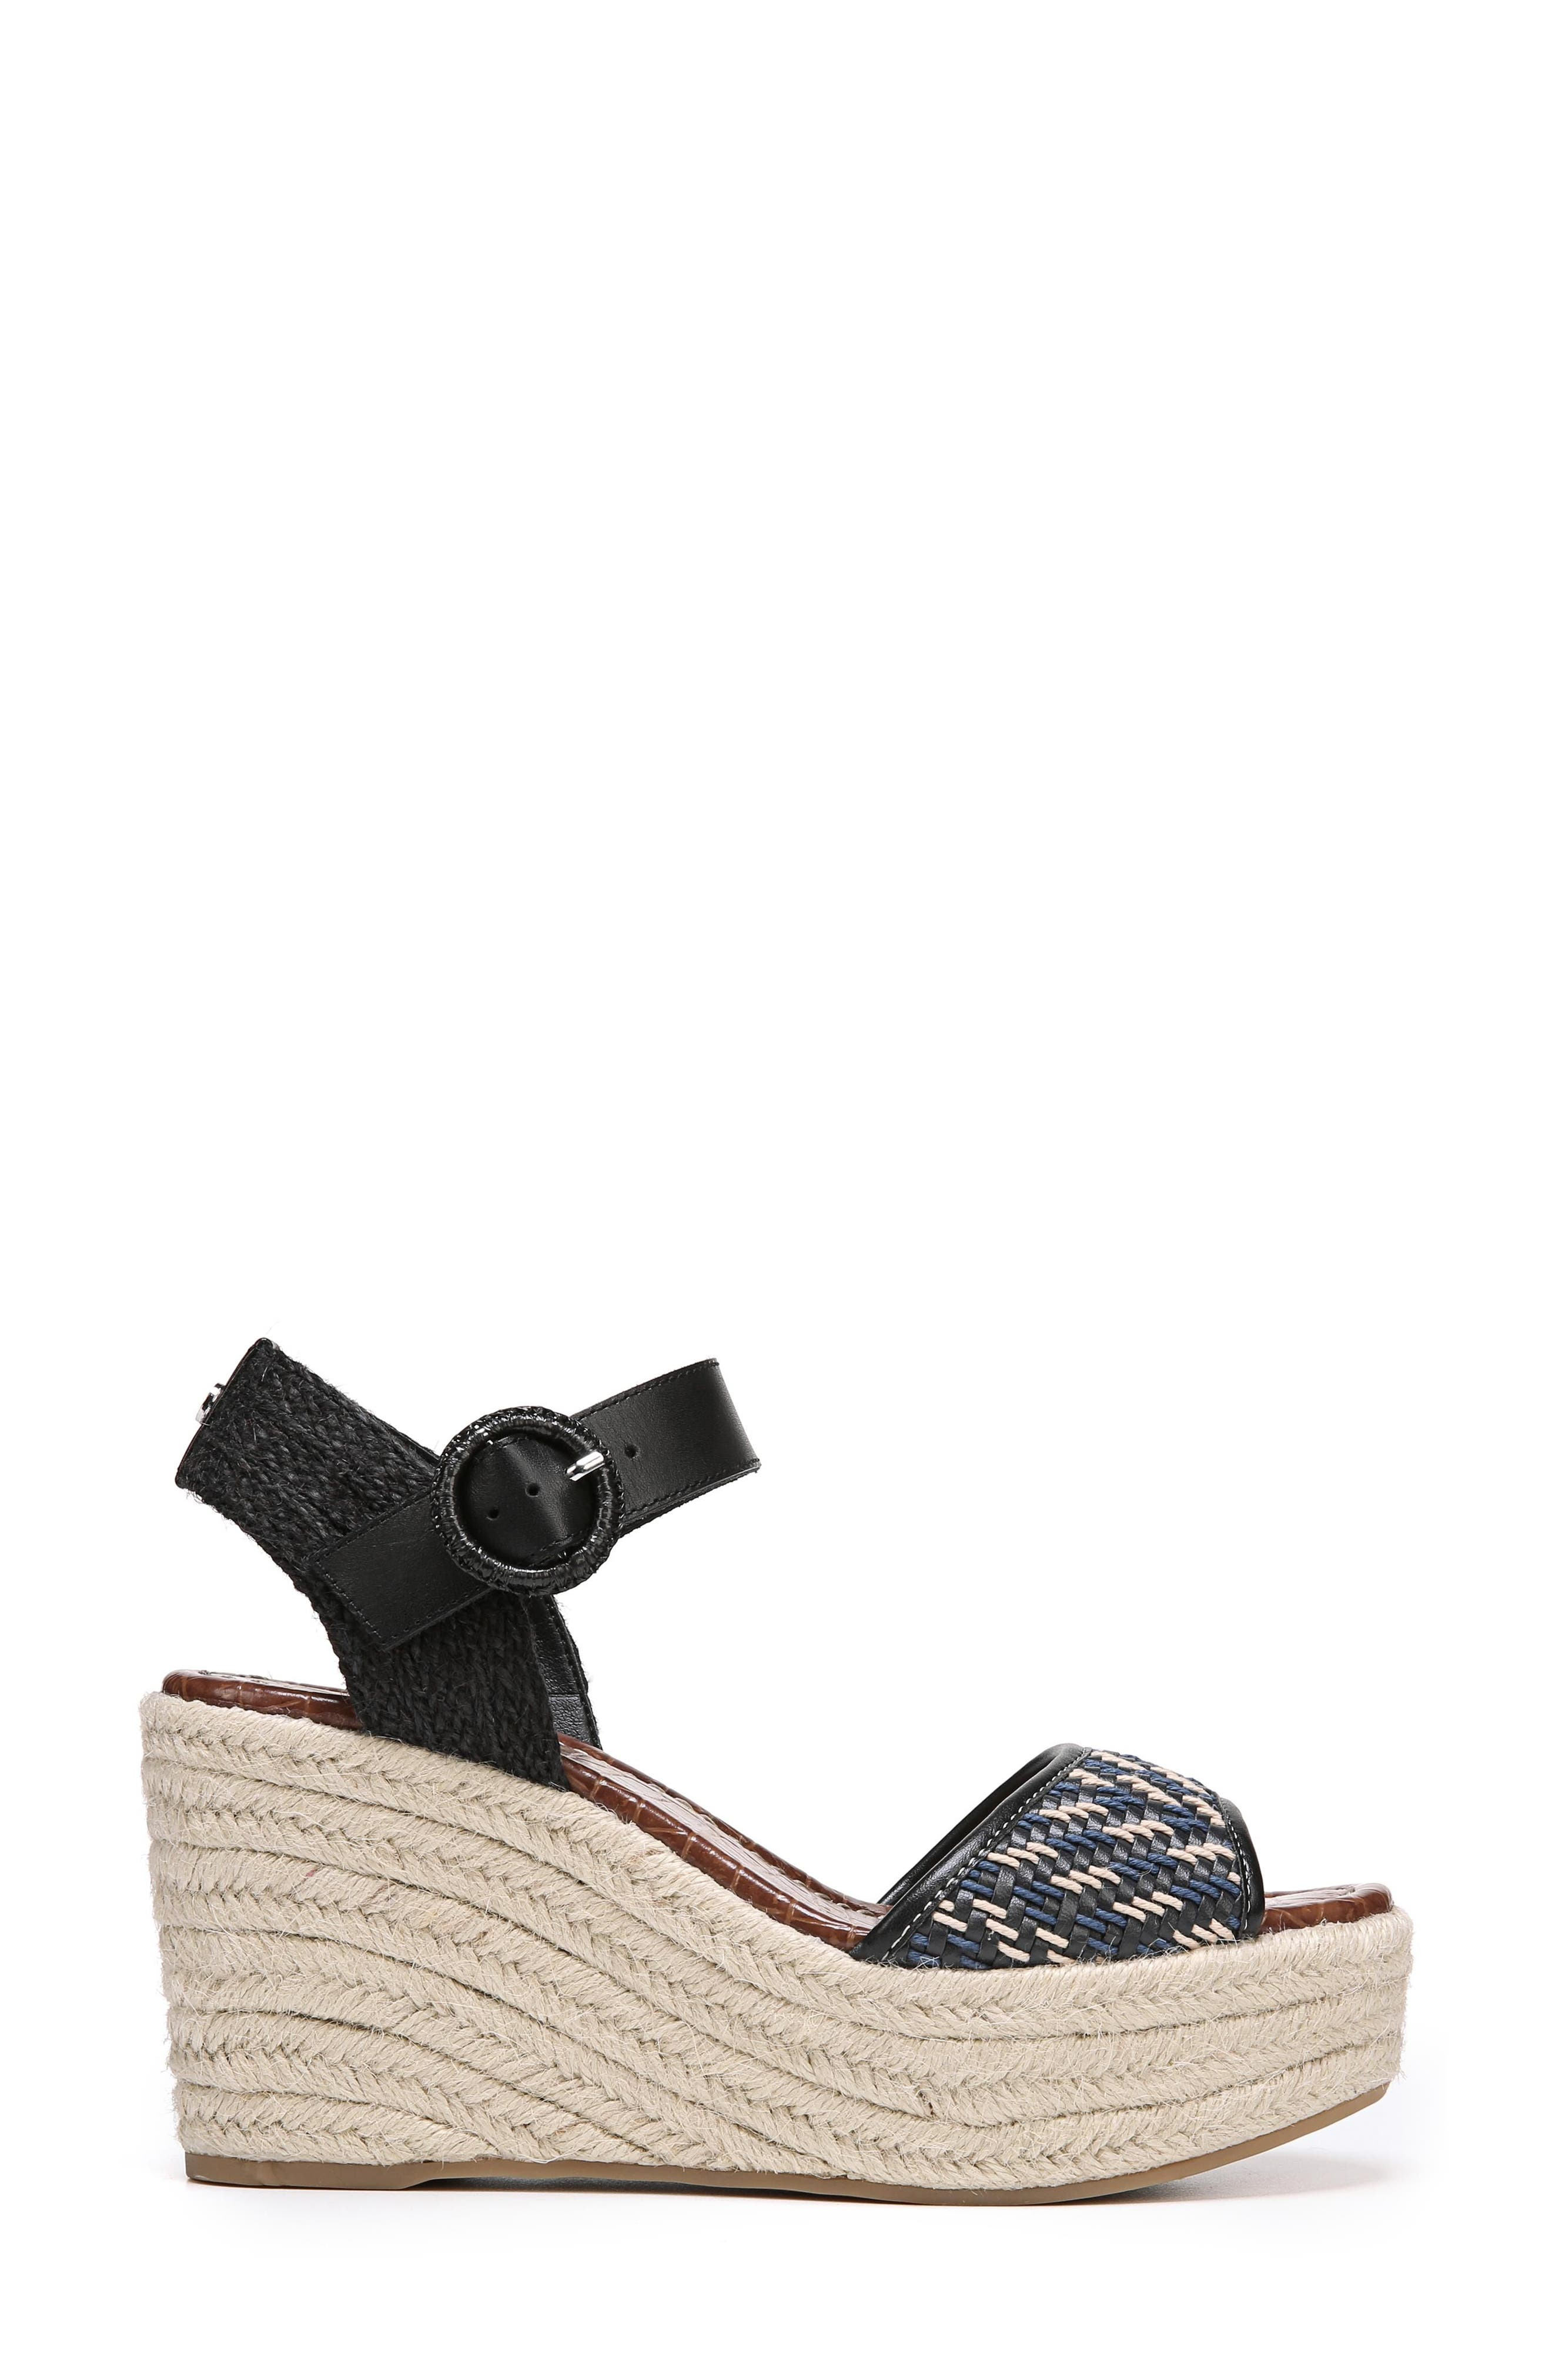 Dimitree Wedge,                             Alternate thumbnail 3, color,                             NAVY/ BLACK